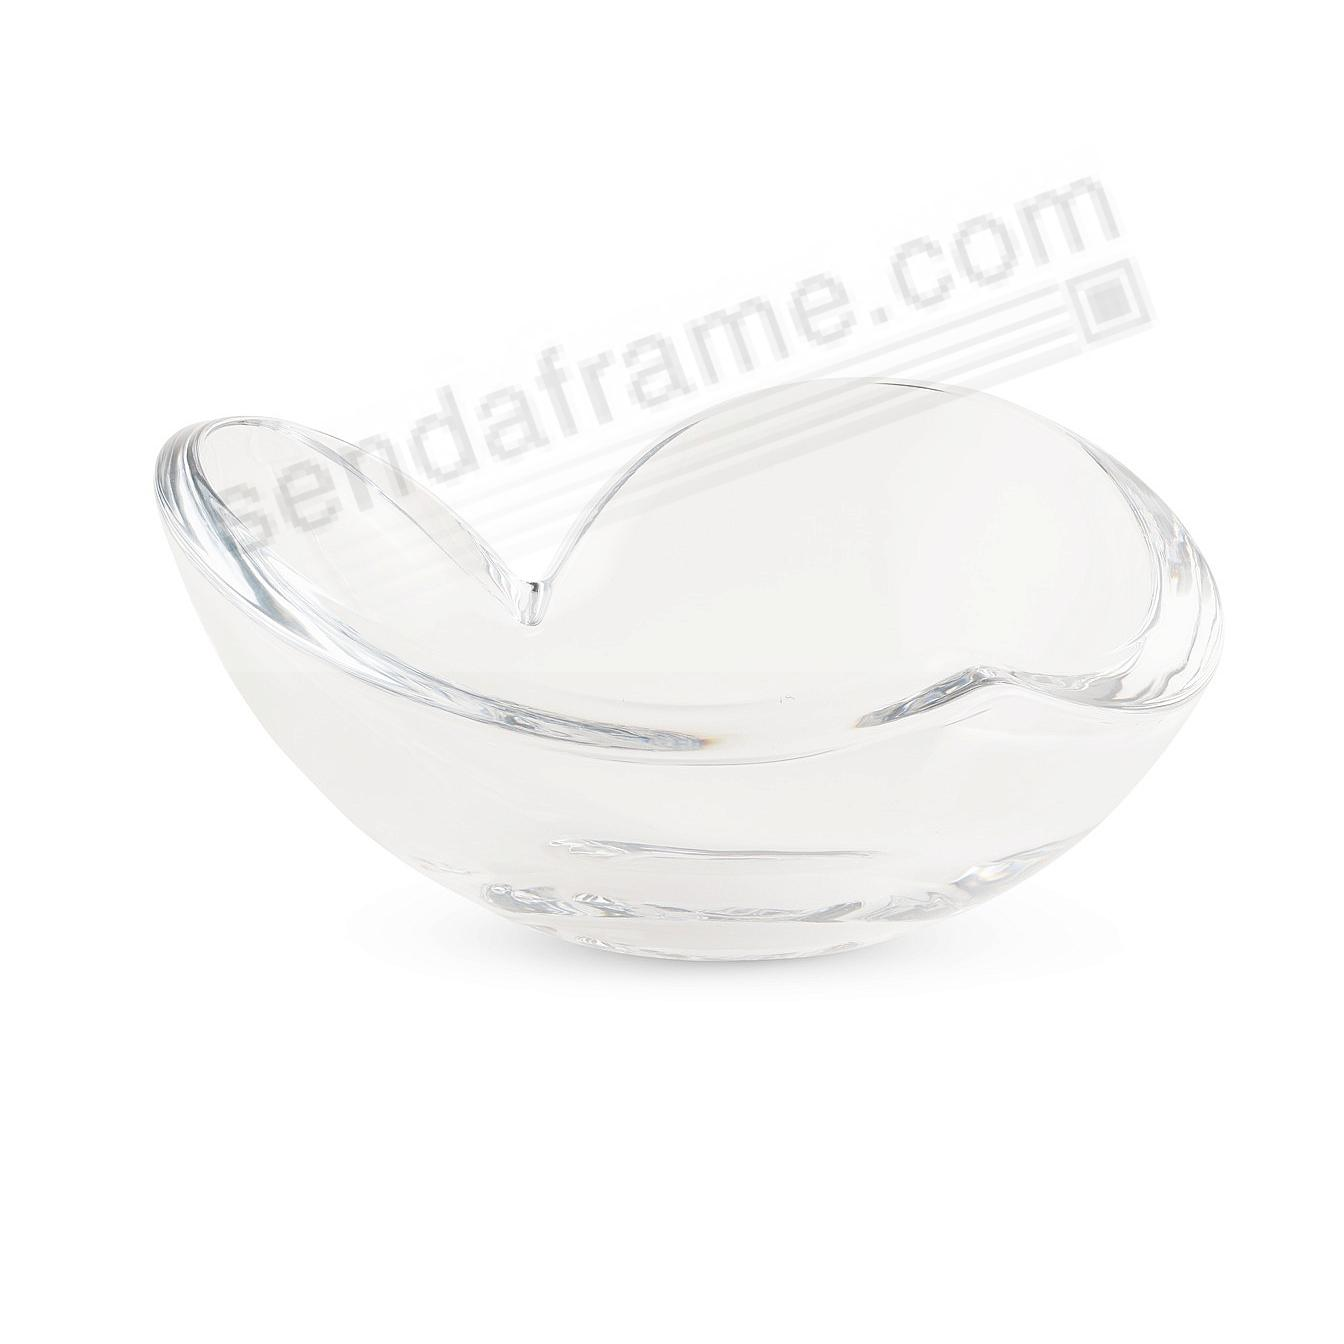 HEART BOWL (MEDIUM) crafted by Nambe®